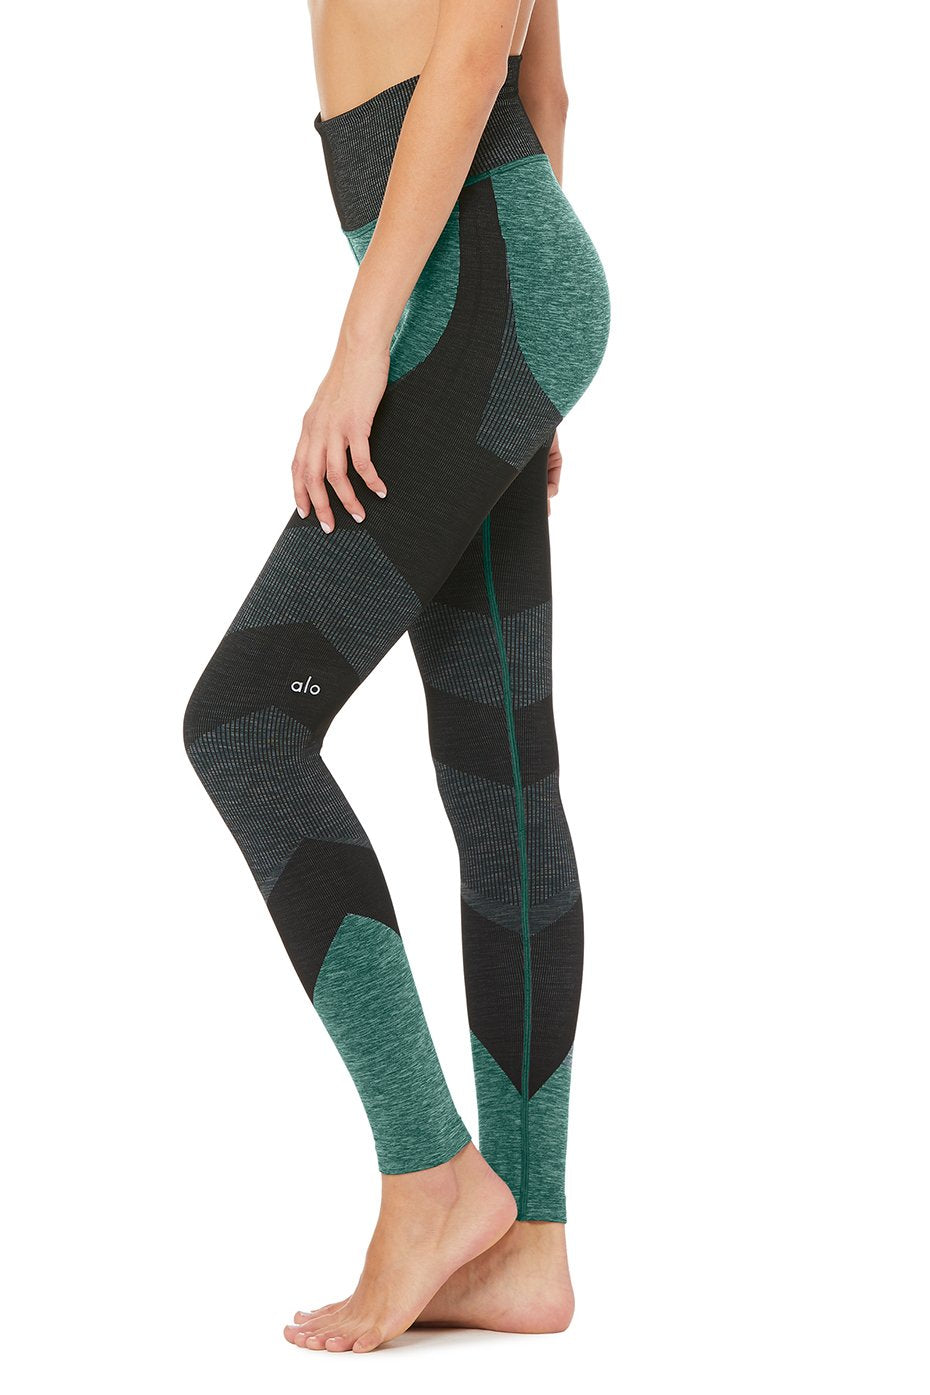 6eecaef8d863df ... Alo Yoga SMALL High-Waist Seamless Lift Legging - Tourmaline Heather ...